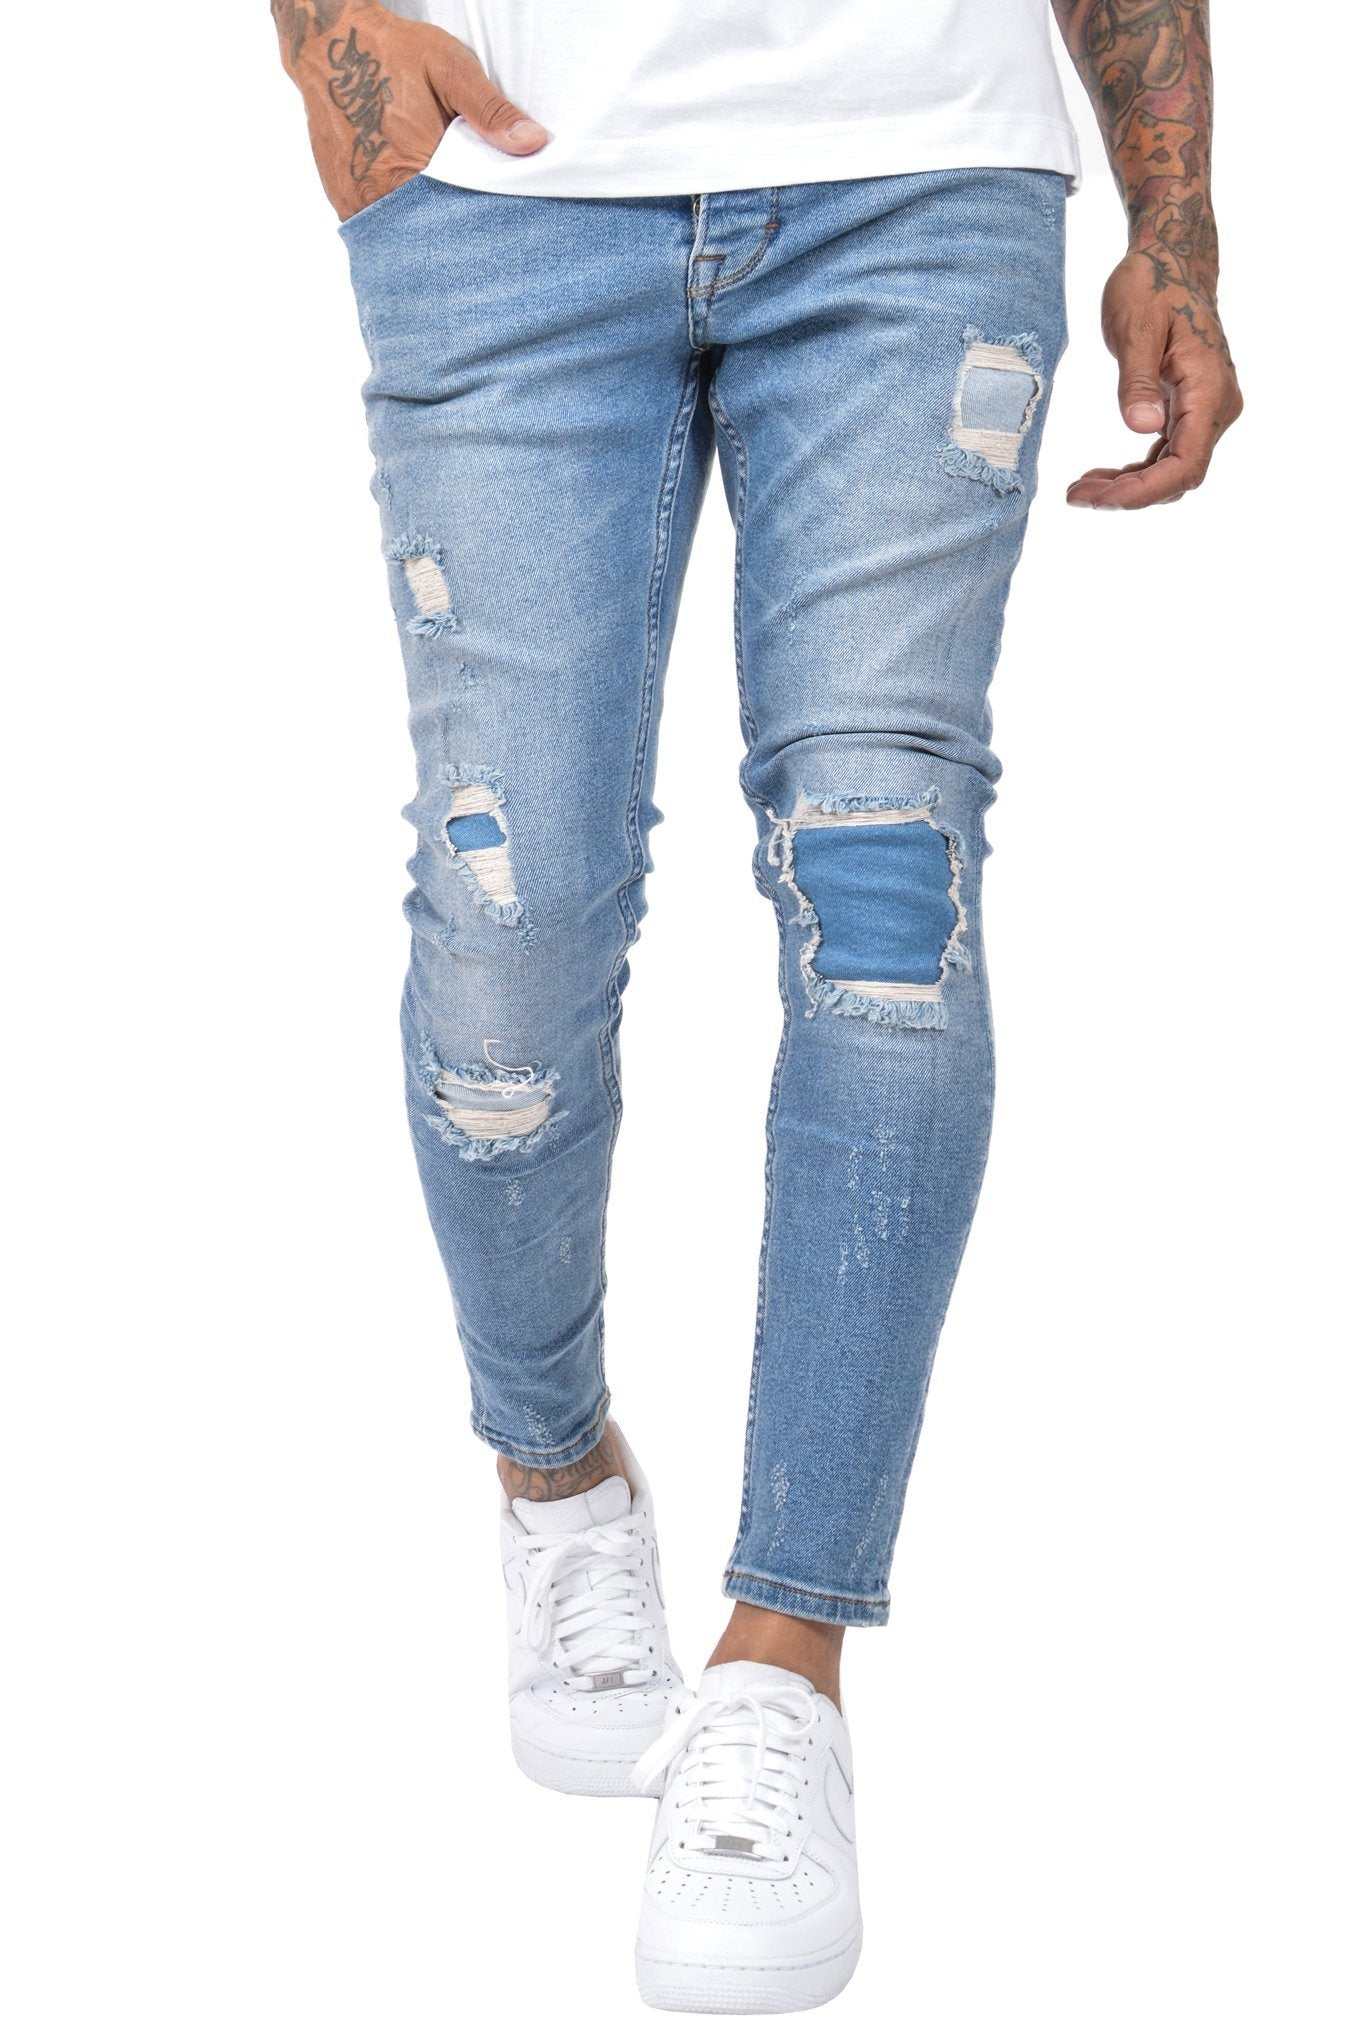 Murcia Repairer Jeans Sand Blue - PEGADOR - Dominate the Hype